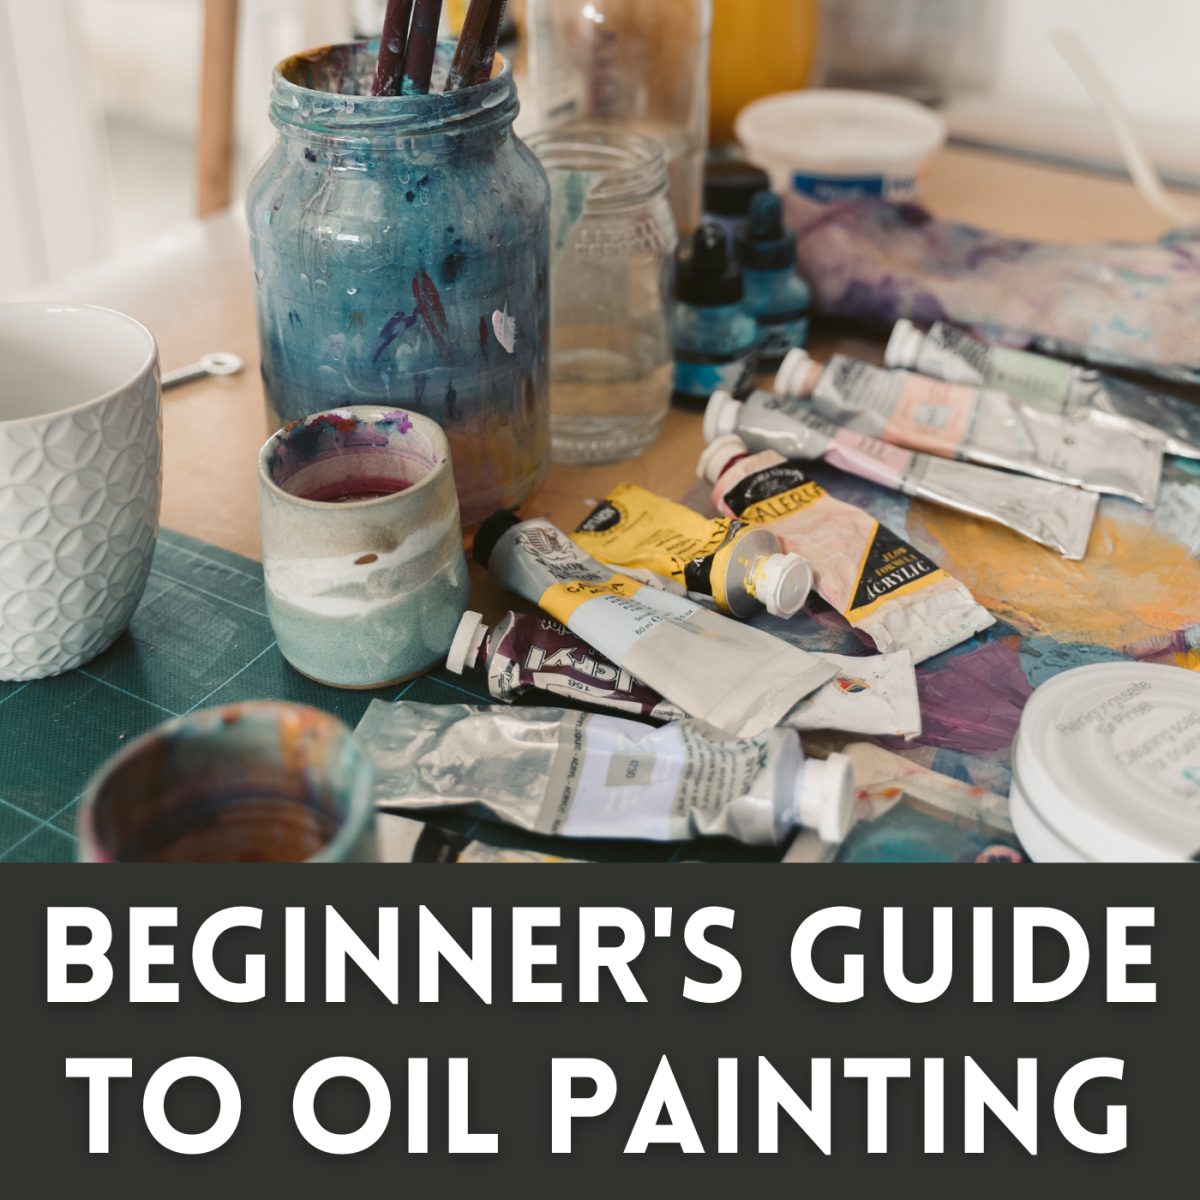 Beginner's Guide to Oil Painting: Canvas Preparation and Sketch Transference